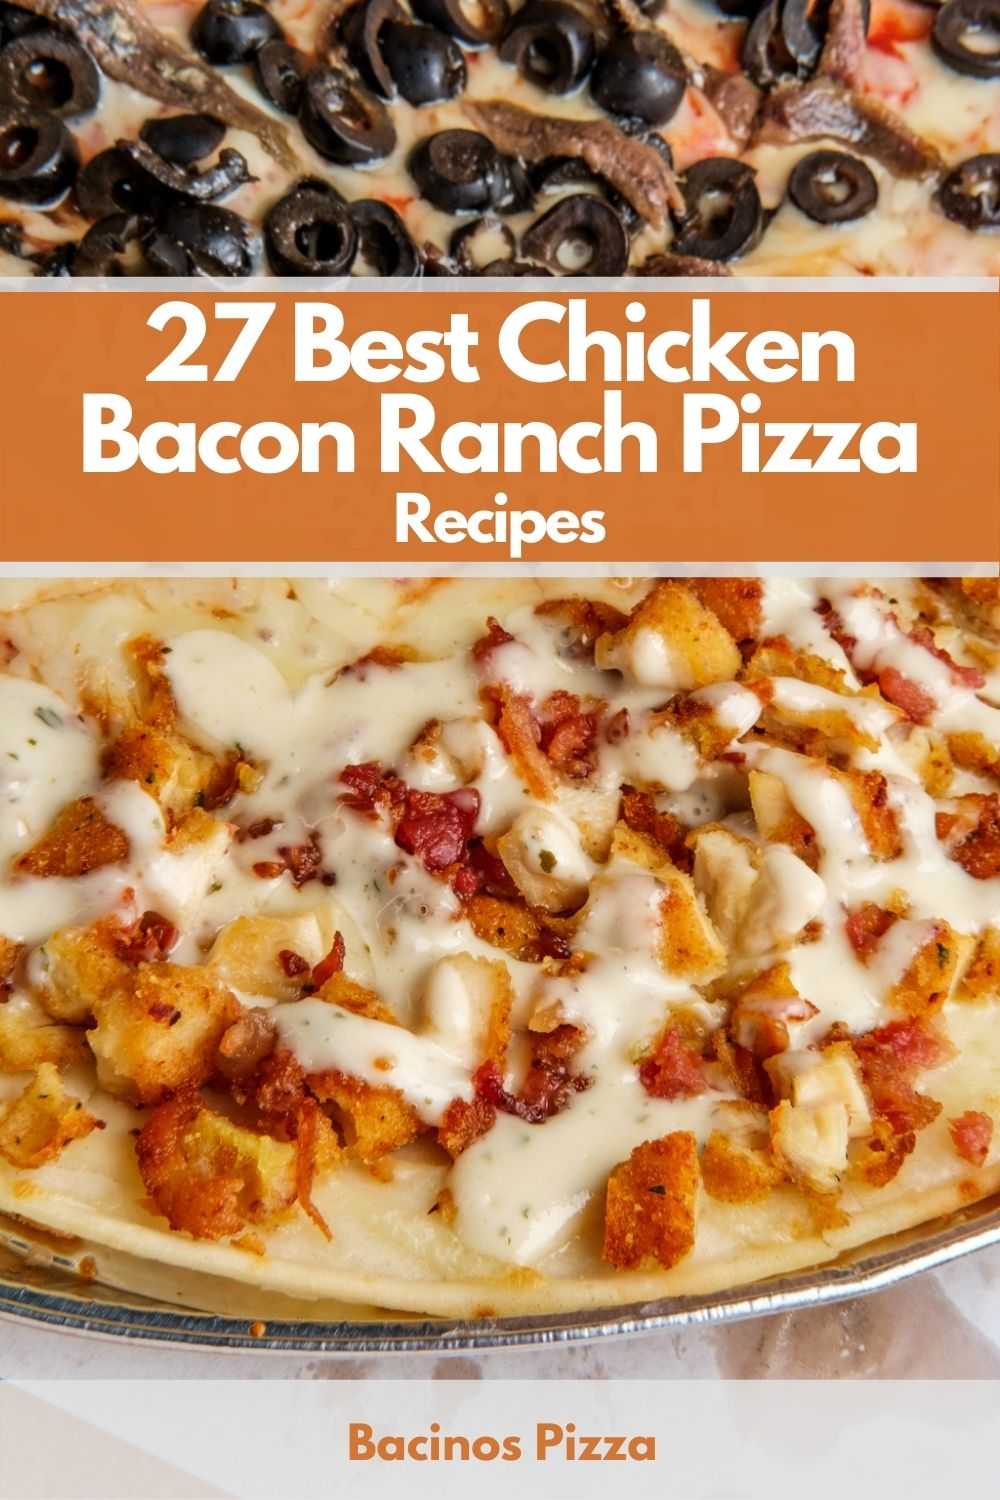 27 Best Chicken Bacon Ranch Pizza Recipes pin